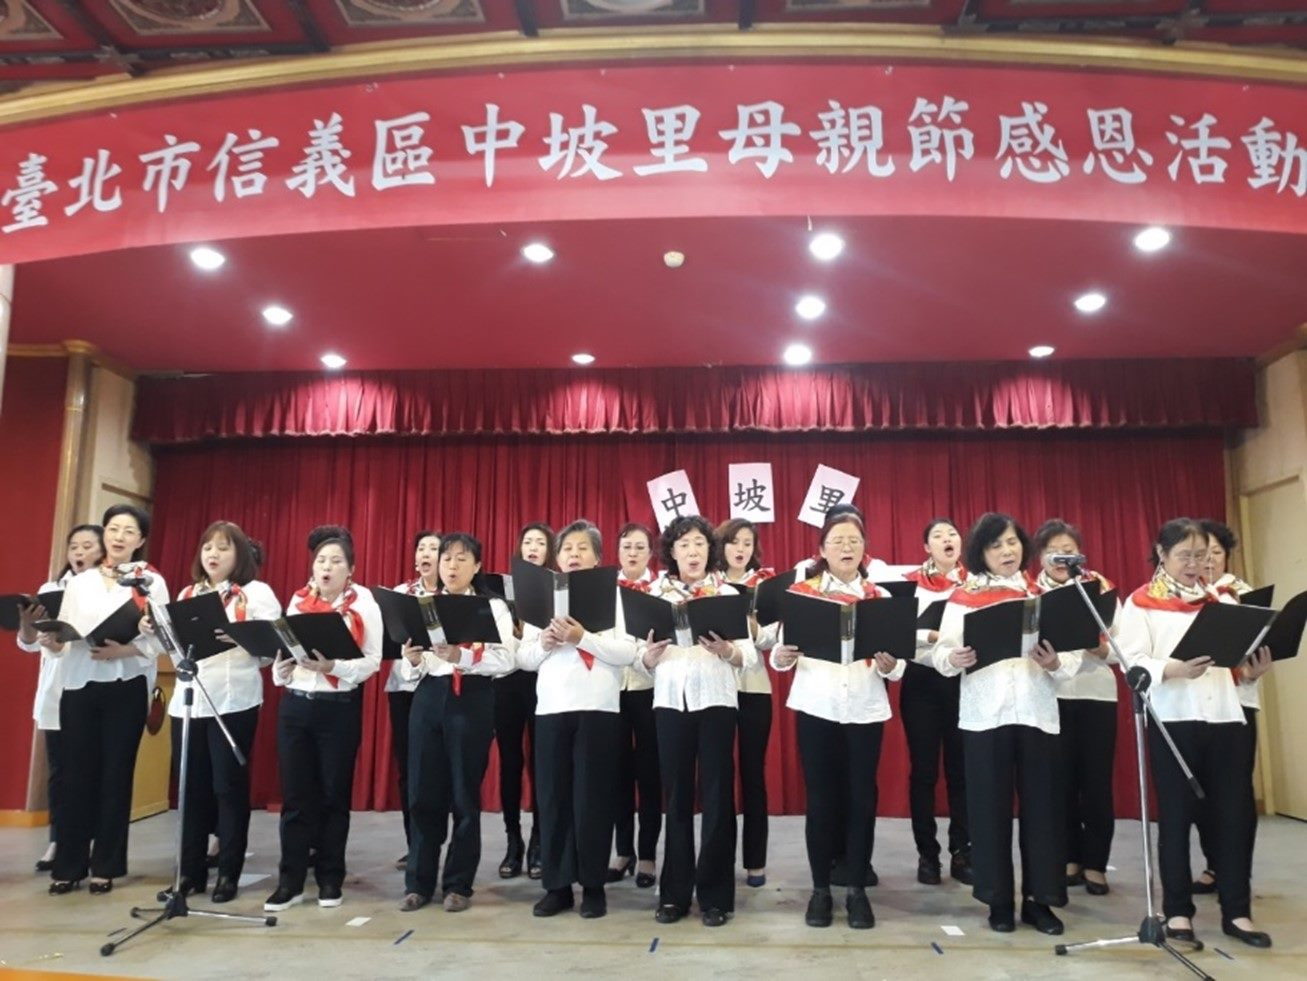 Xinyi Vocal Class performing the vocal show